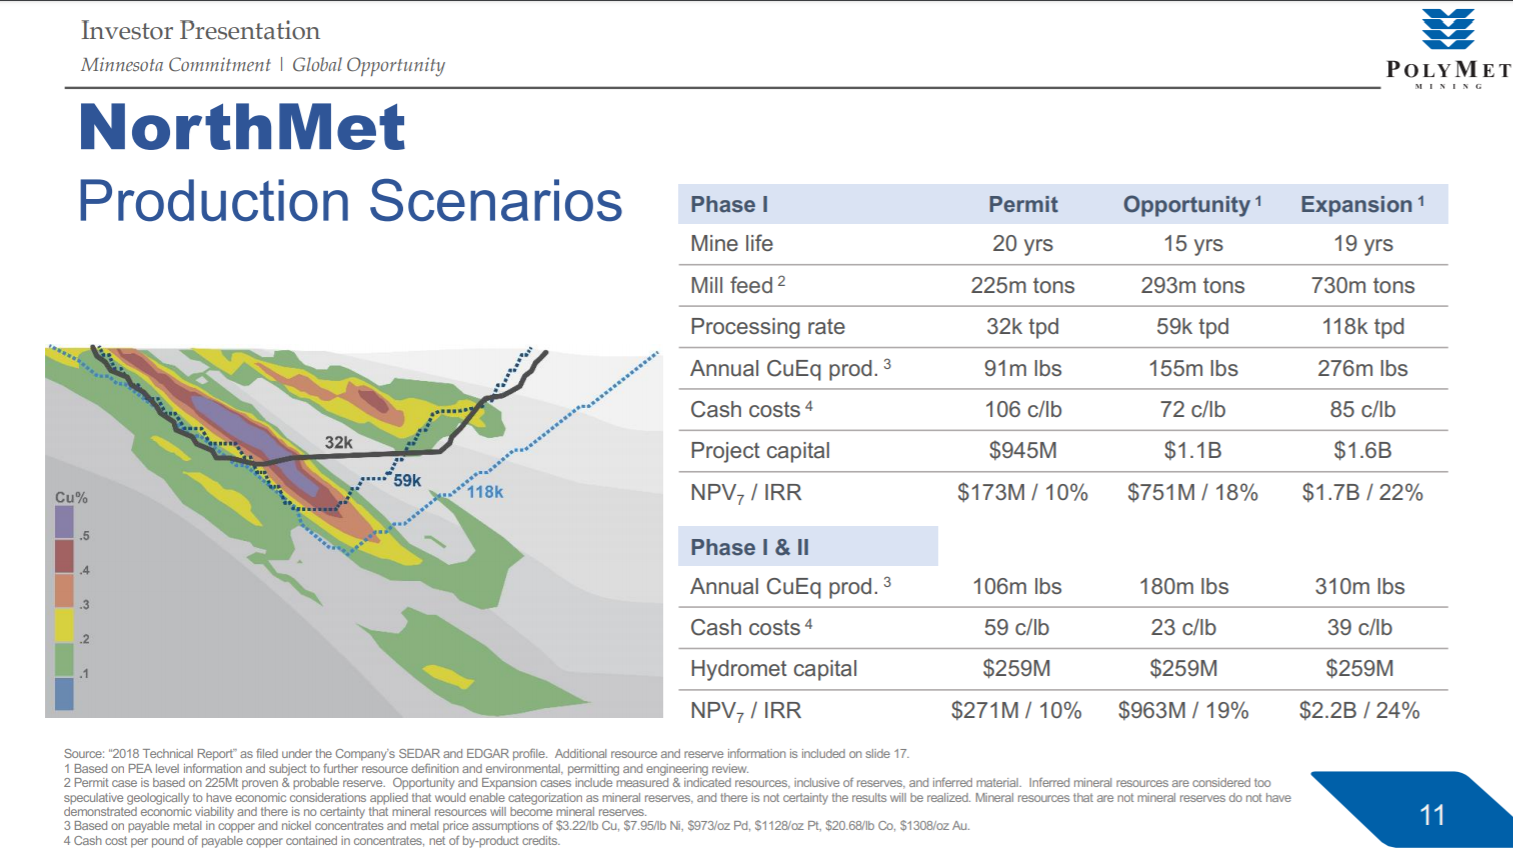 A chart showing PolyMet production scenarios